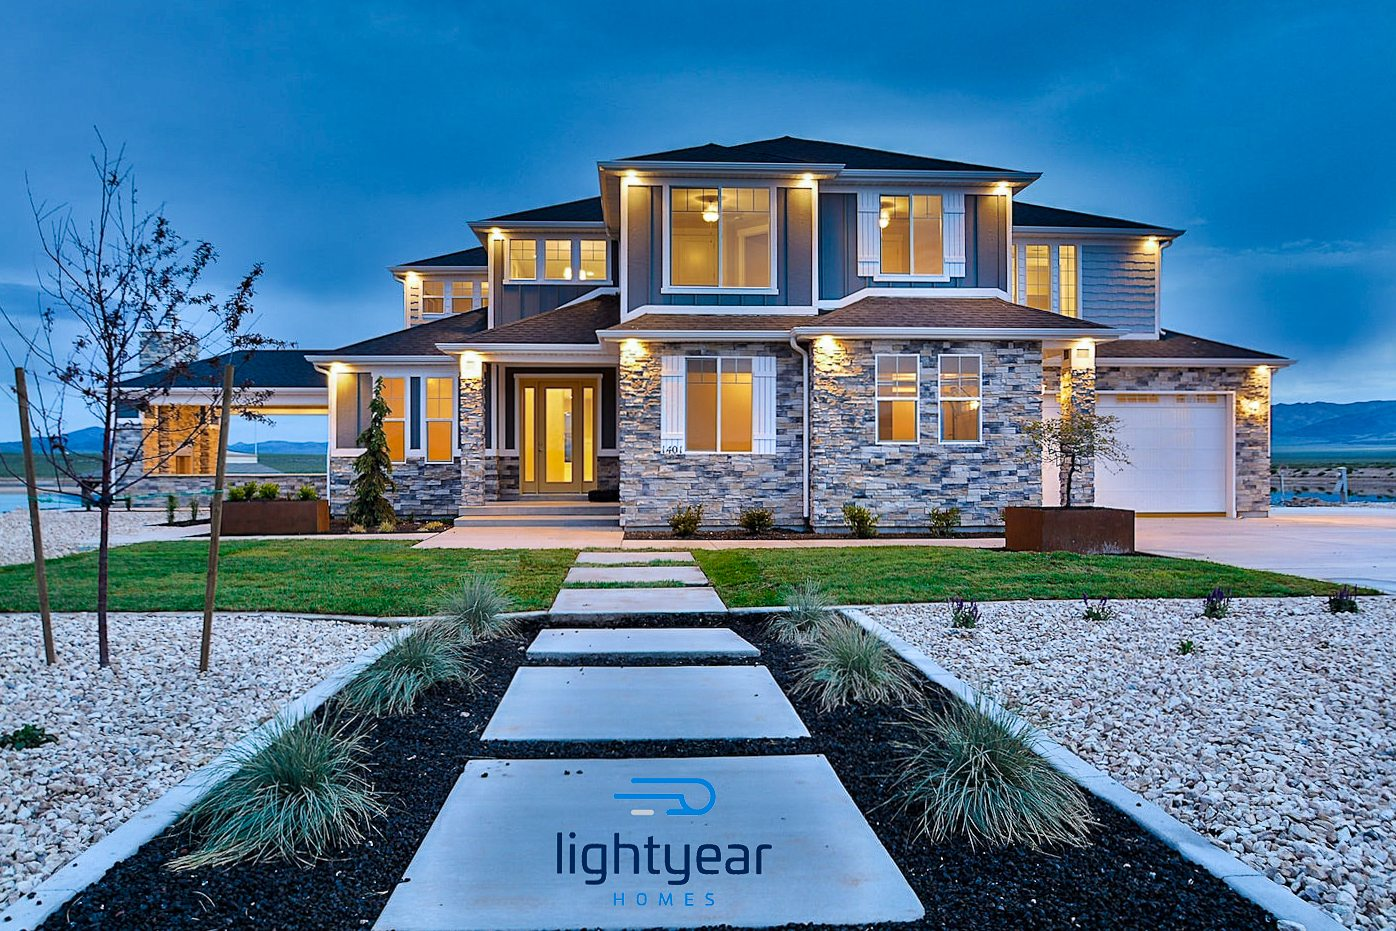 lightyear homes custom 2-story in tooele county | lightyear homes